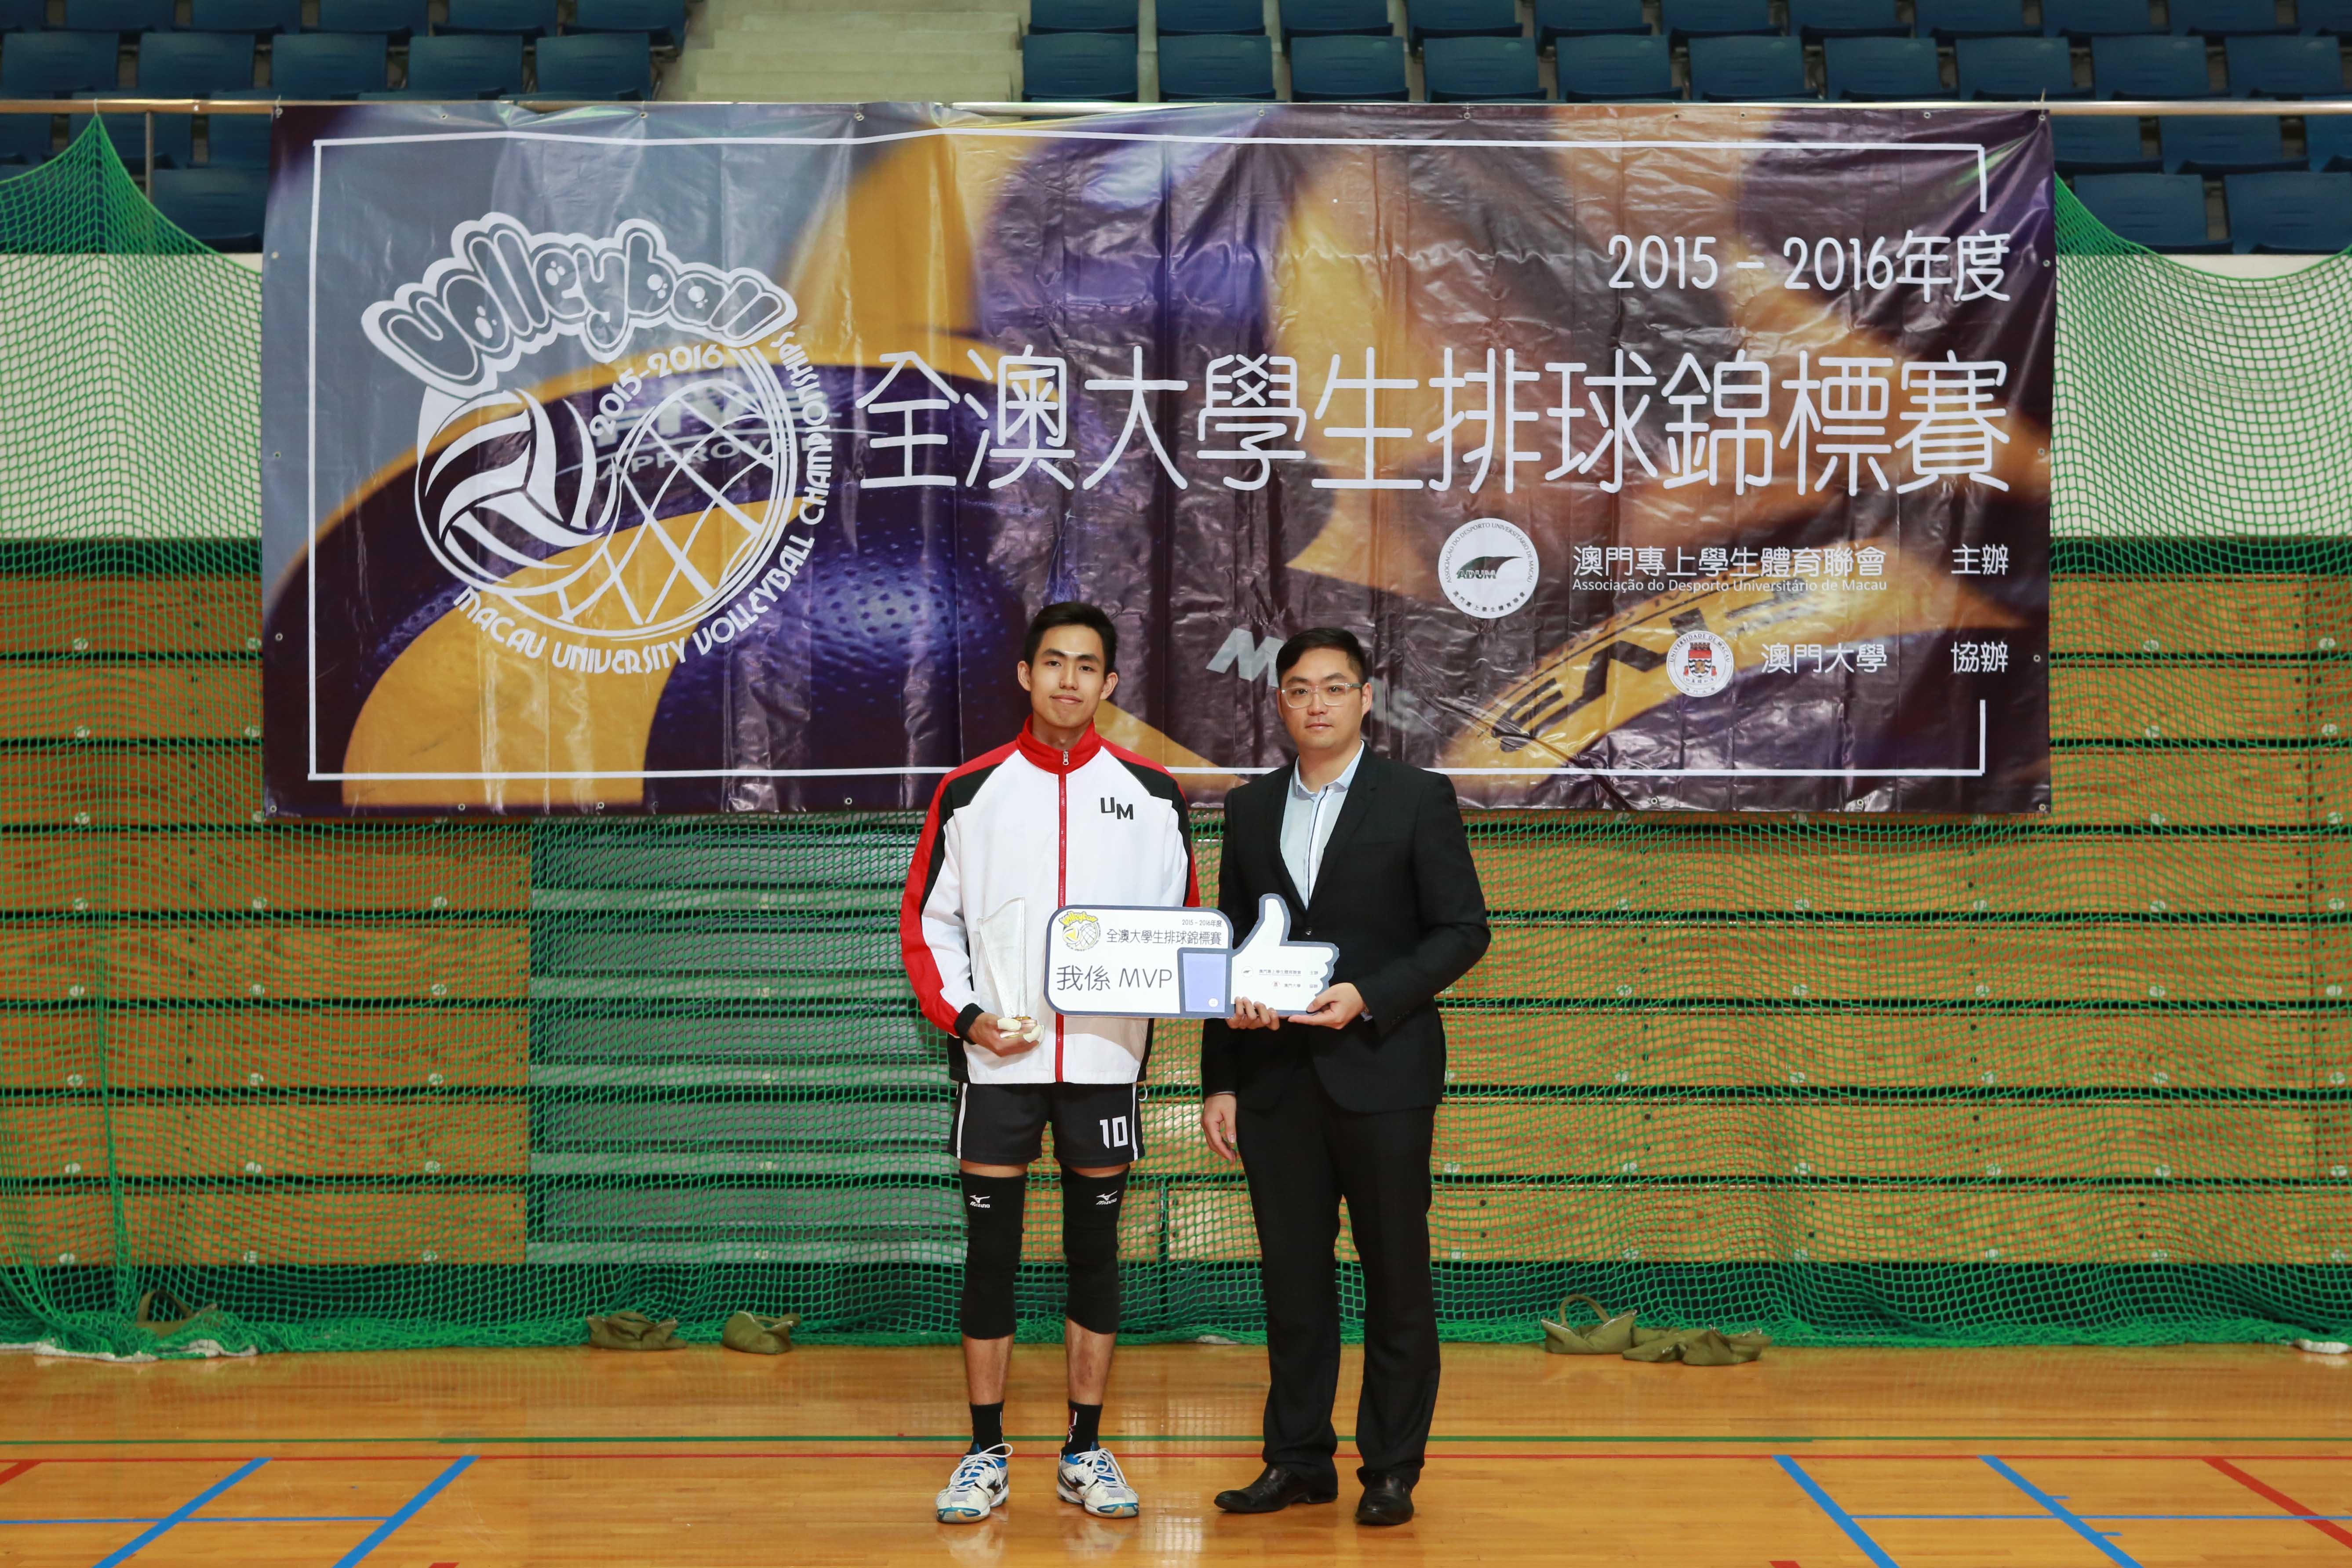 A member of UM's Men's Volleyball Team receives the Most Valuable Male Player Award